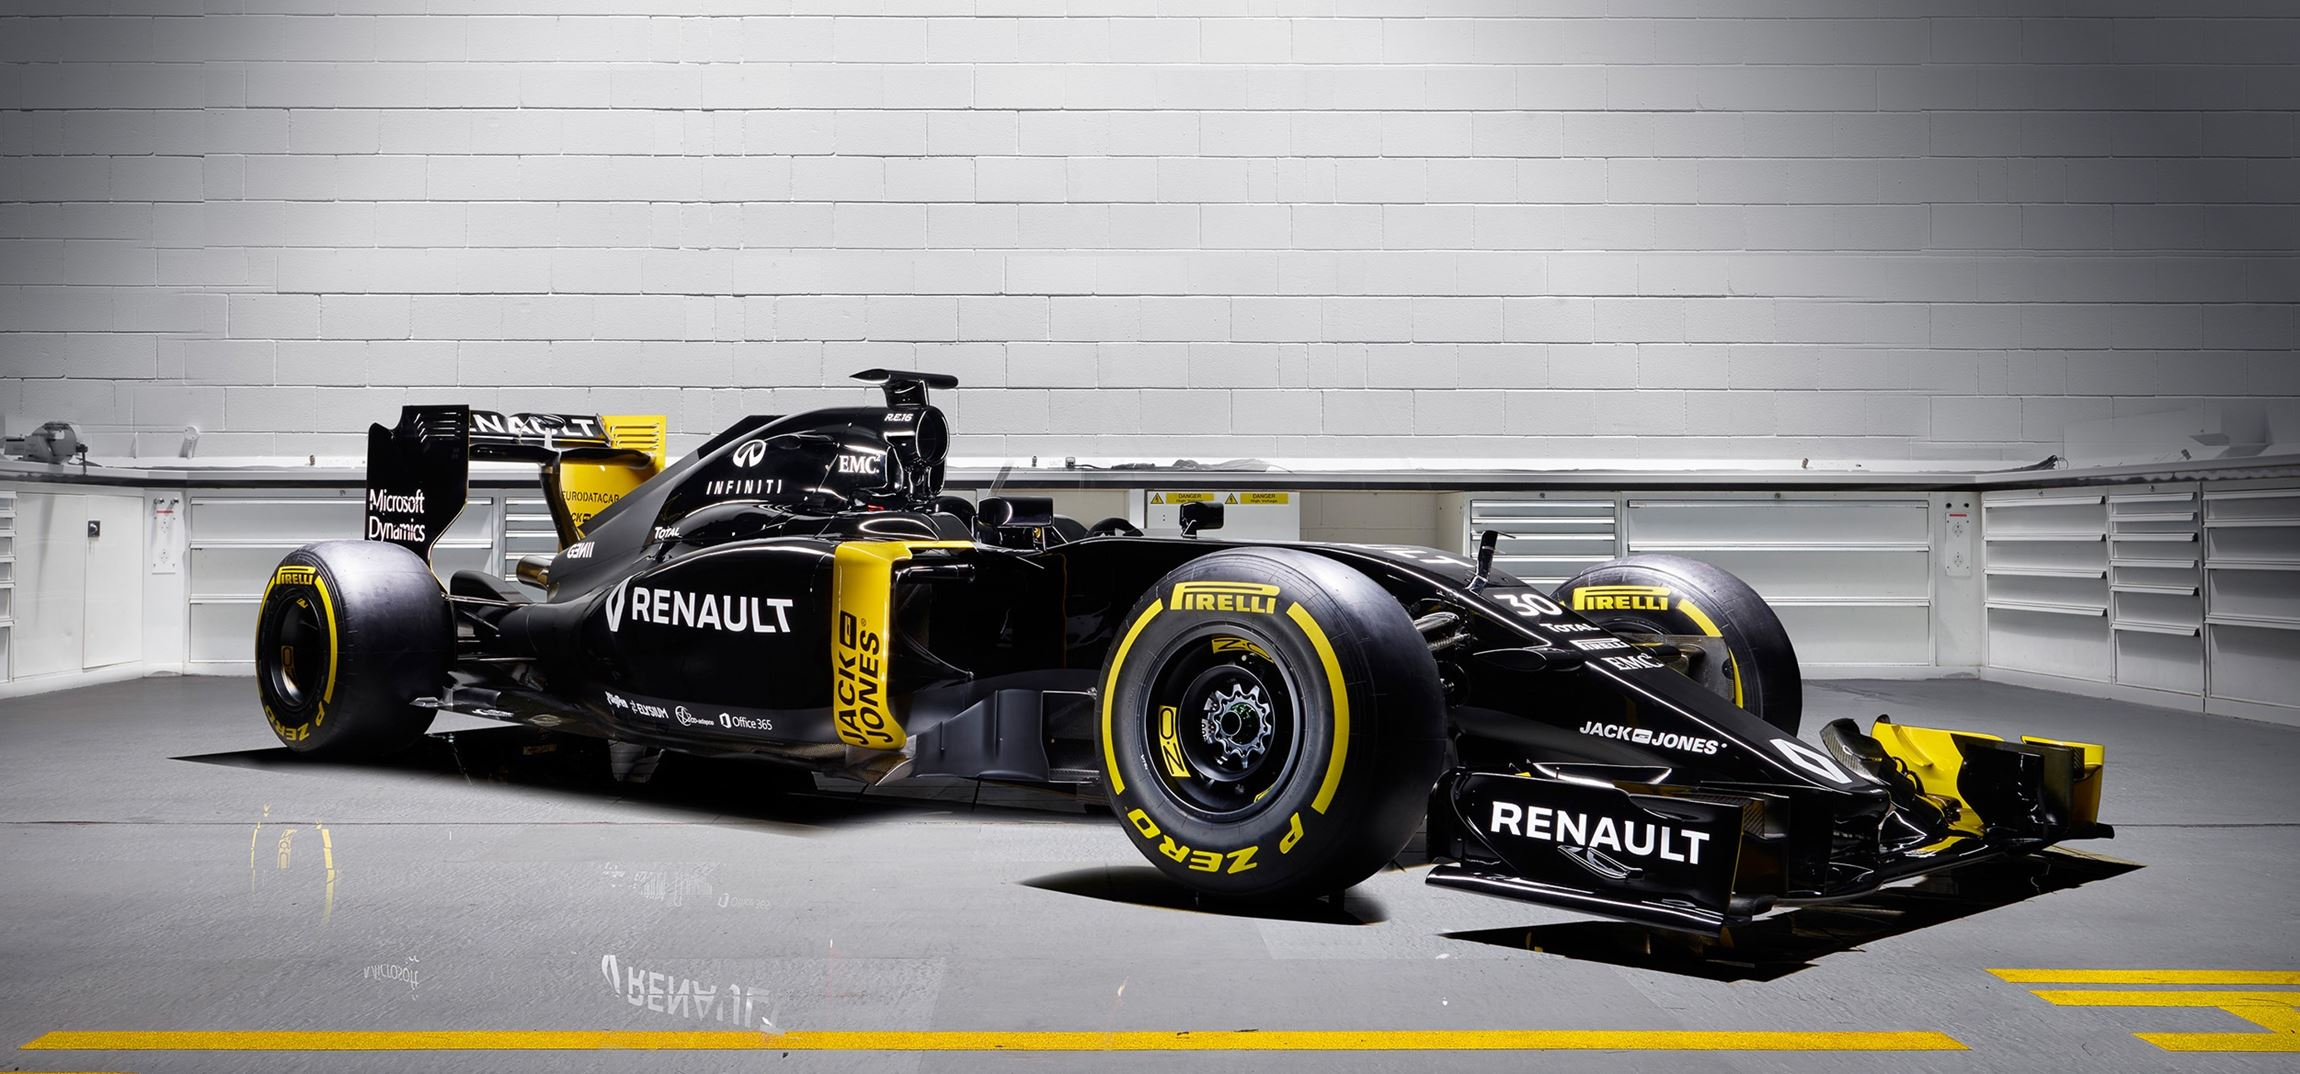 renault sport signs infiniti and bell ross for 2016 f1 reboot. Black Bedroom Furniture Sets. Home Design Ideas